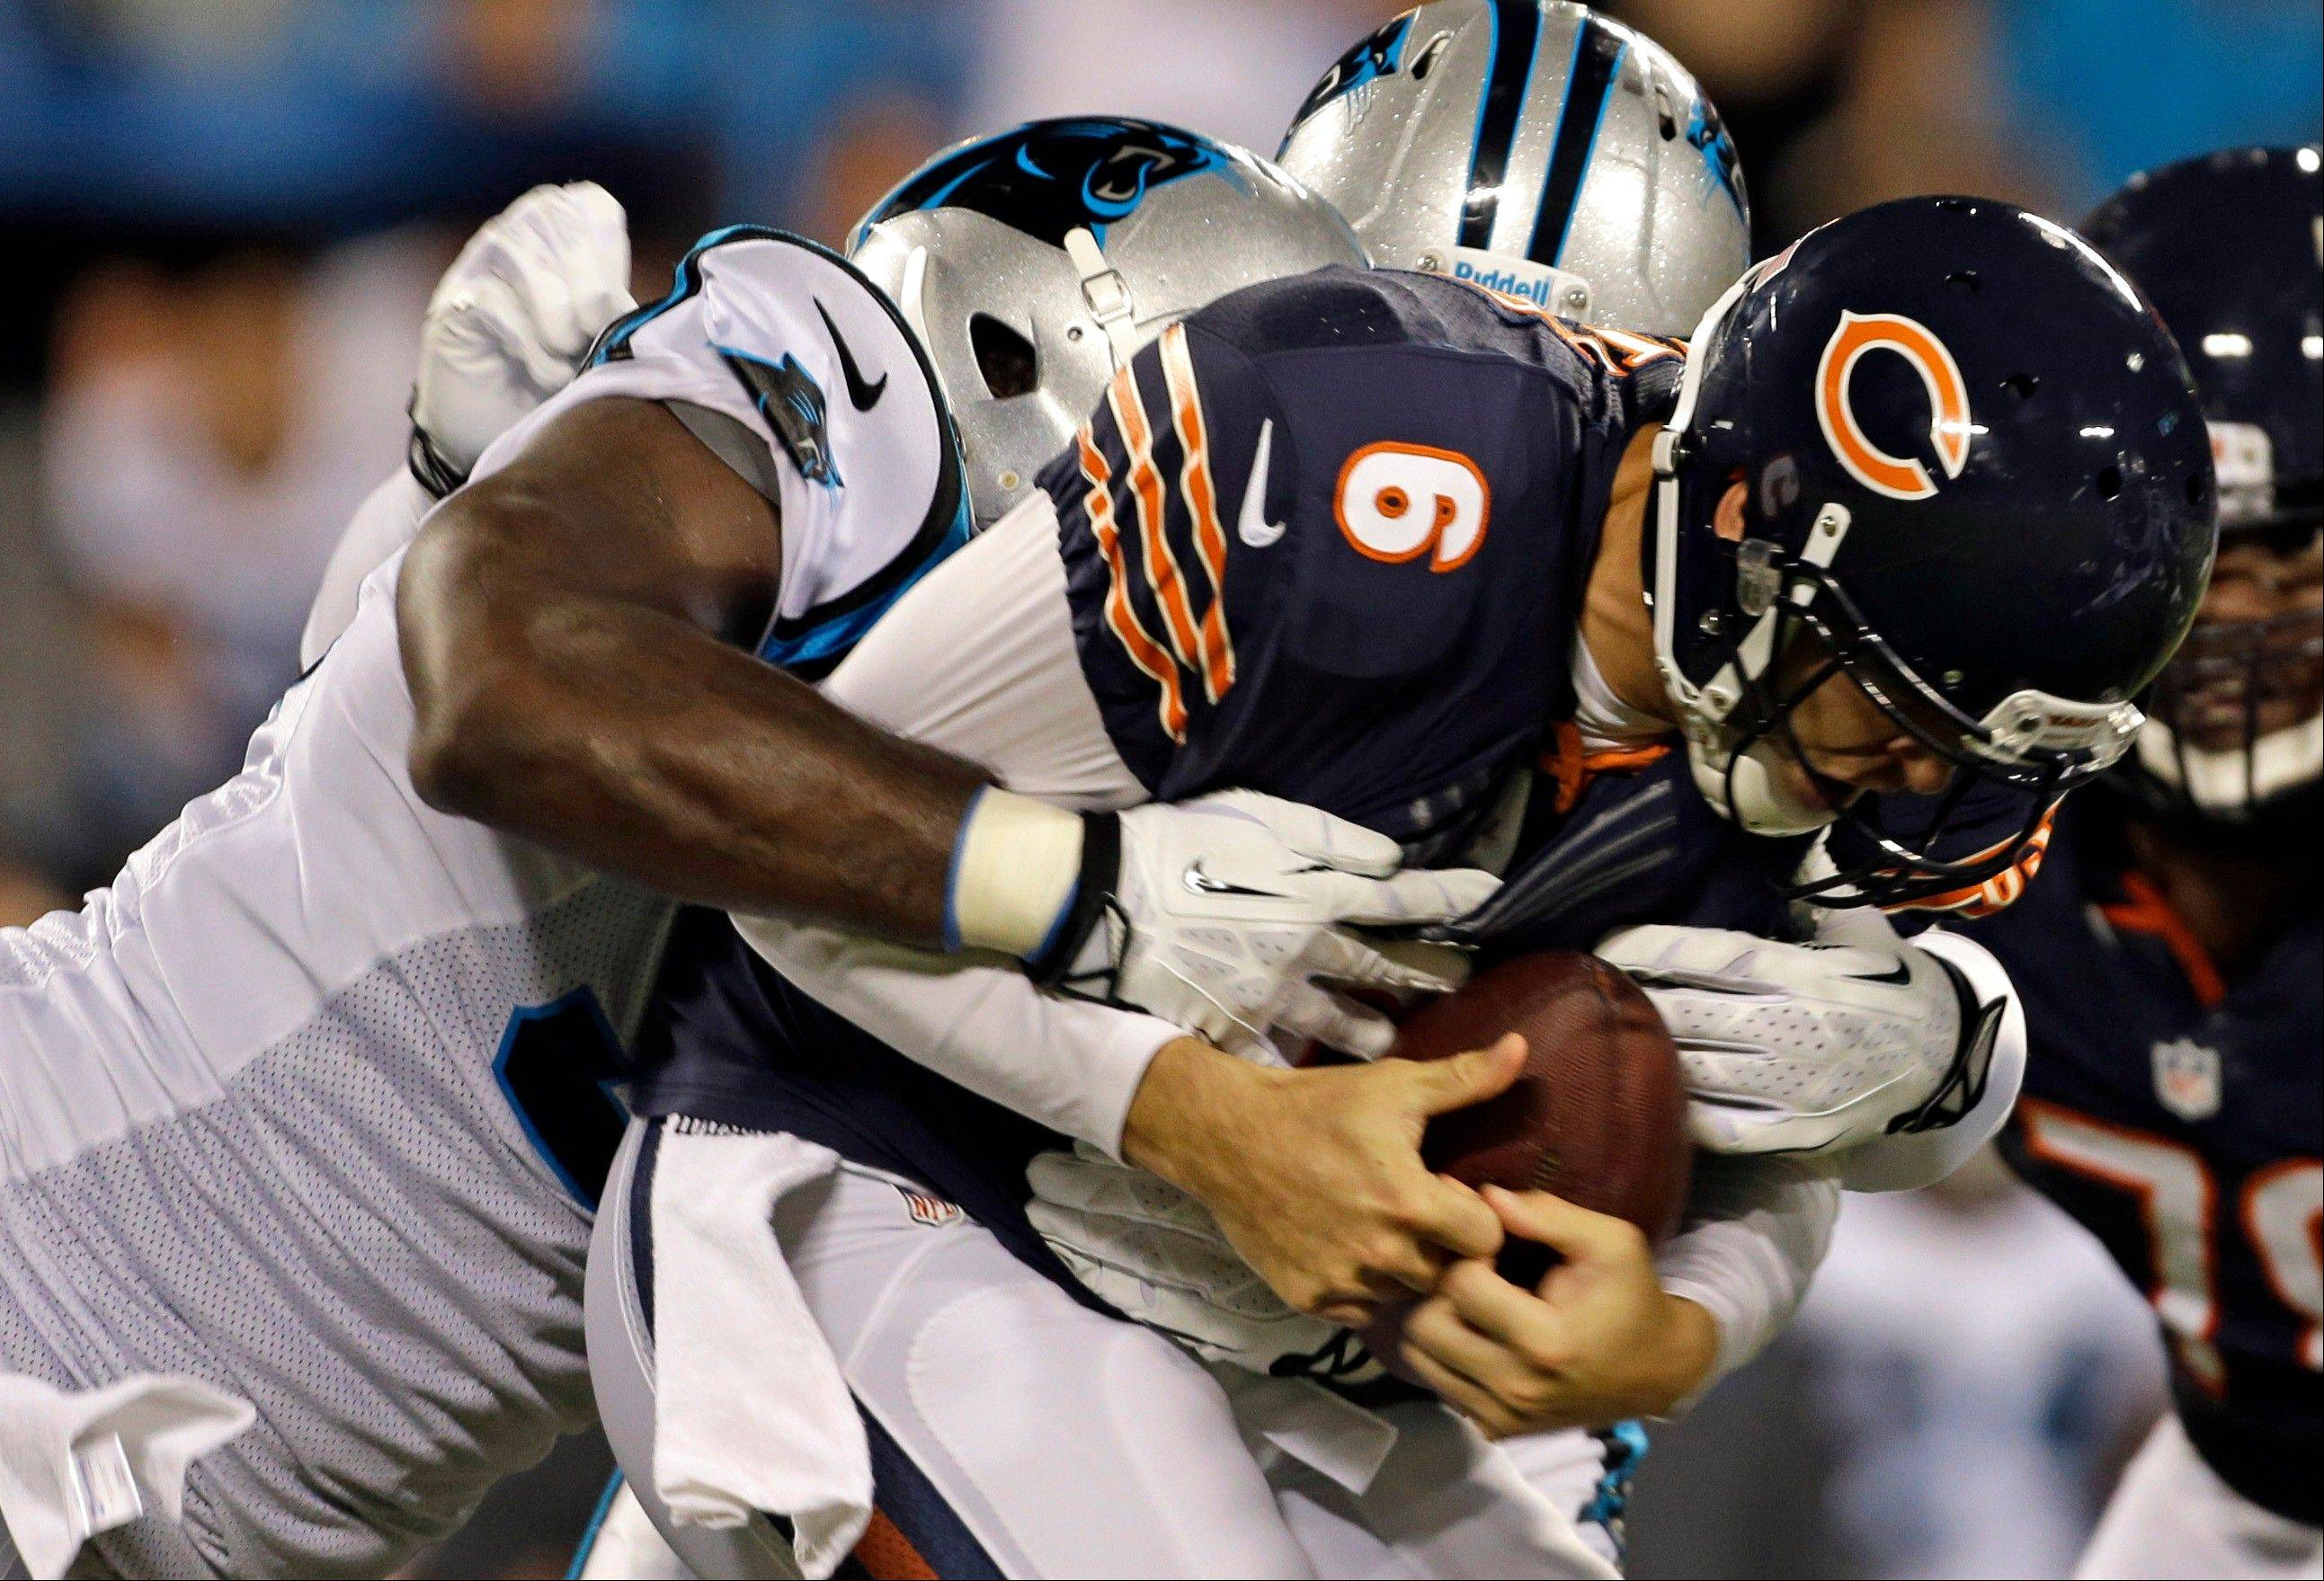 Chicago Bears' Jay Cutler (6) is sacked by Carolina Panthers' Charles Johnson, left, during the first half of a preseason NFL football game in Charlotte, N.C., Friday, Aug. 9, 2013.